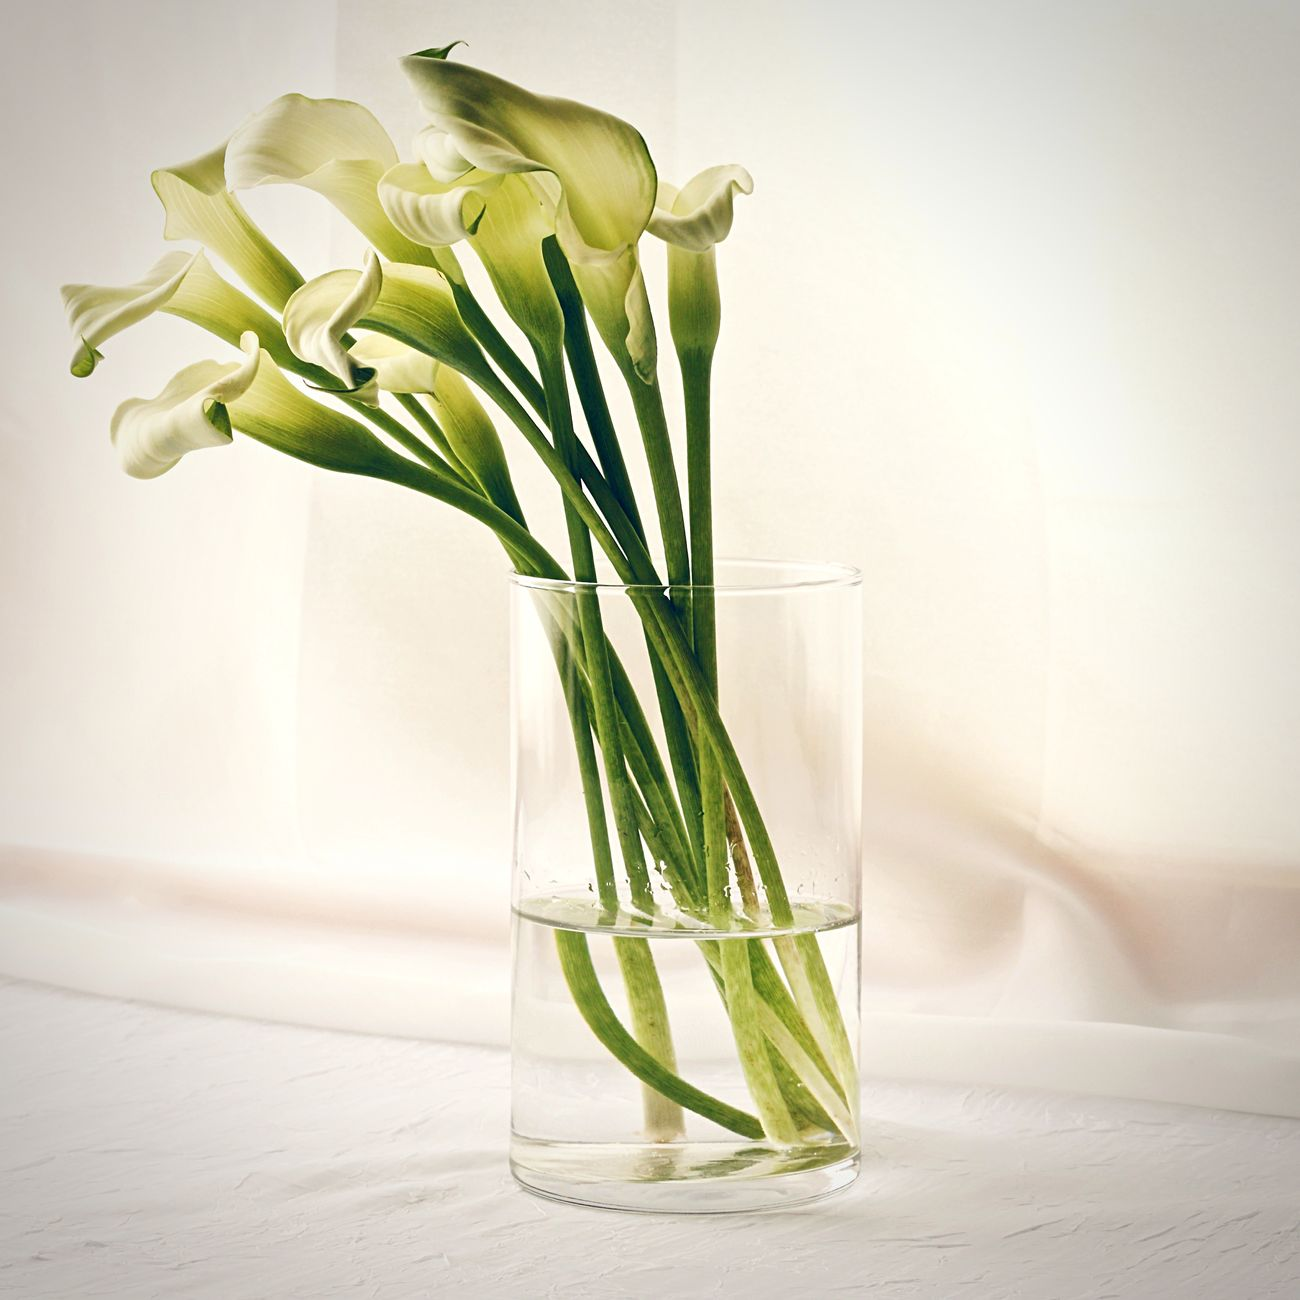 Bouquet in a Vase White Lilies Lilies Calla Lilly Flowers, Nature And Beauty Spring Flowers